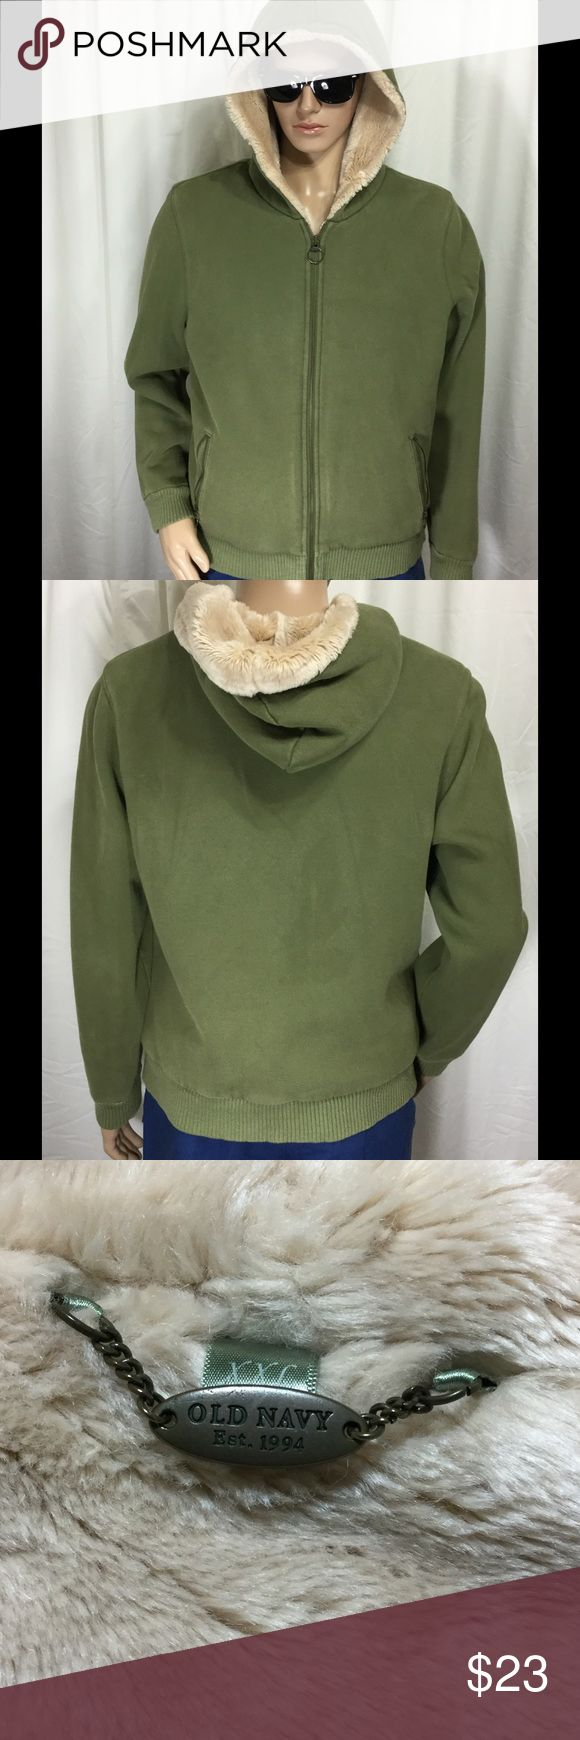 """OLD NAVY faux fur/Sherpa lined hoodie sweatshirt Clean . No issues . View HD pics for details . Pit-pit 23"""" . Neck-tail 25"""" . Neck-CUFF 29.5"""" . green with beige fur interior . Women's XXL Old Navy Tops Sweatshirts & Hoodies"""